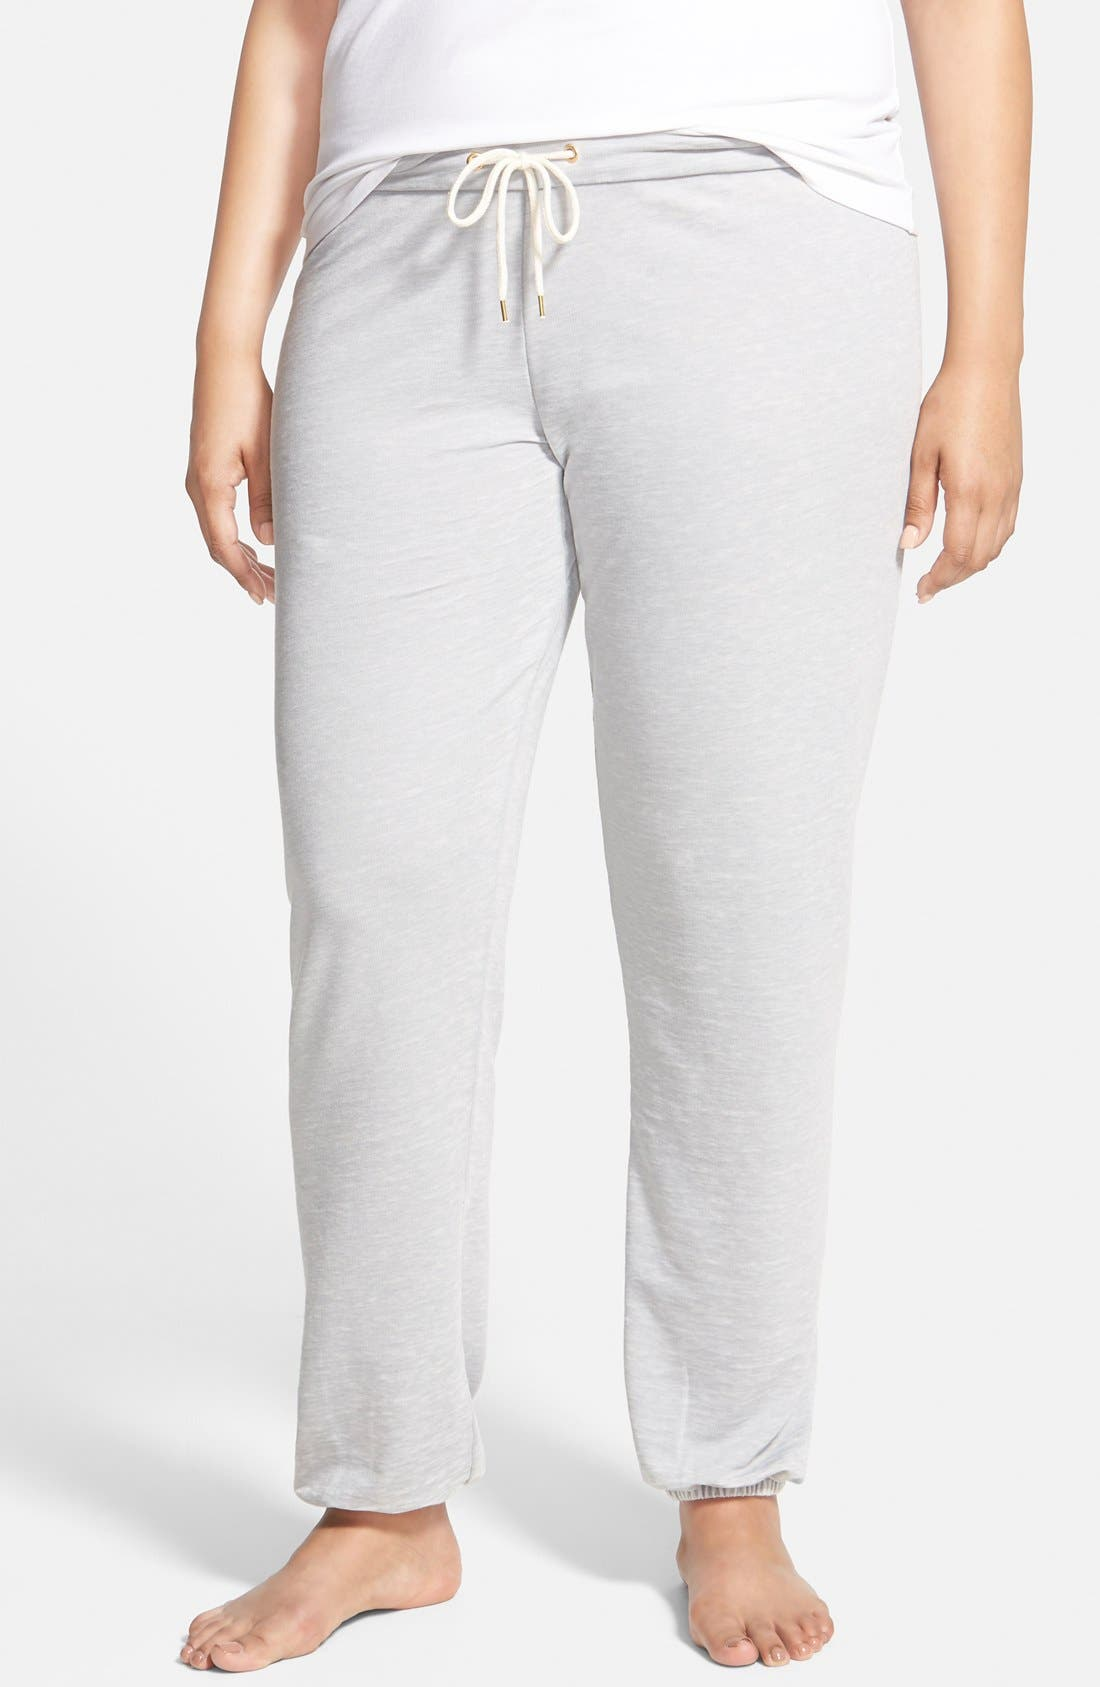 Alternate Image 1 Selected - Honeydew Intimates Burnout French Terry Joggers (Plus Size) (Online Only)